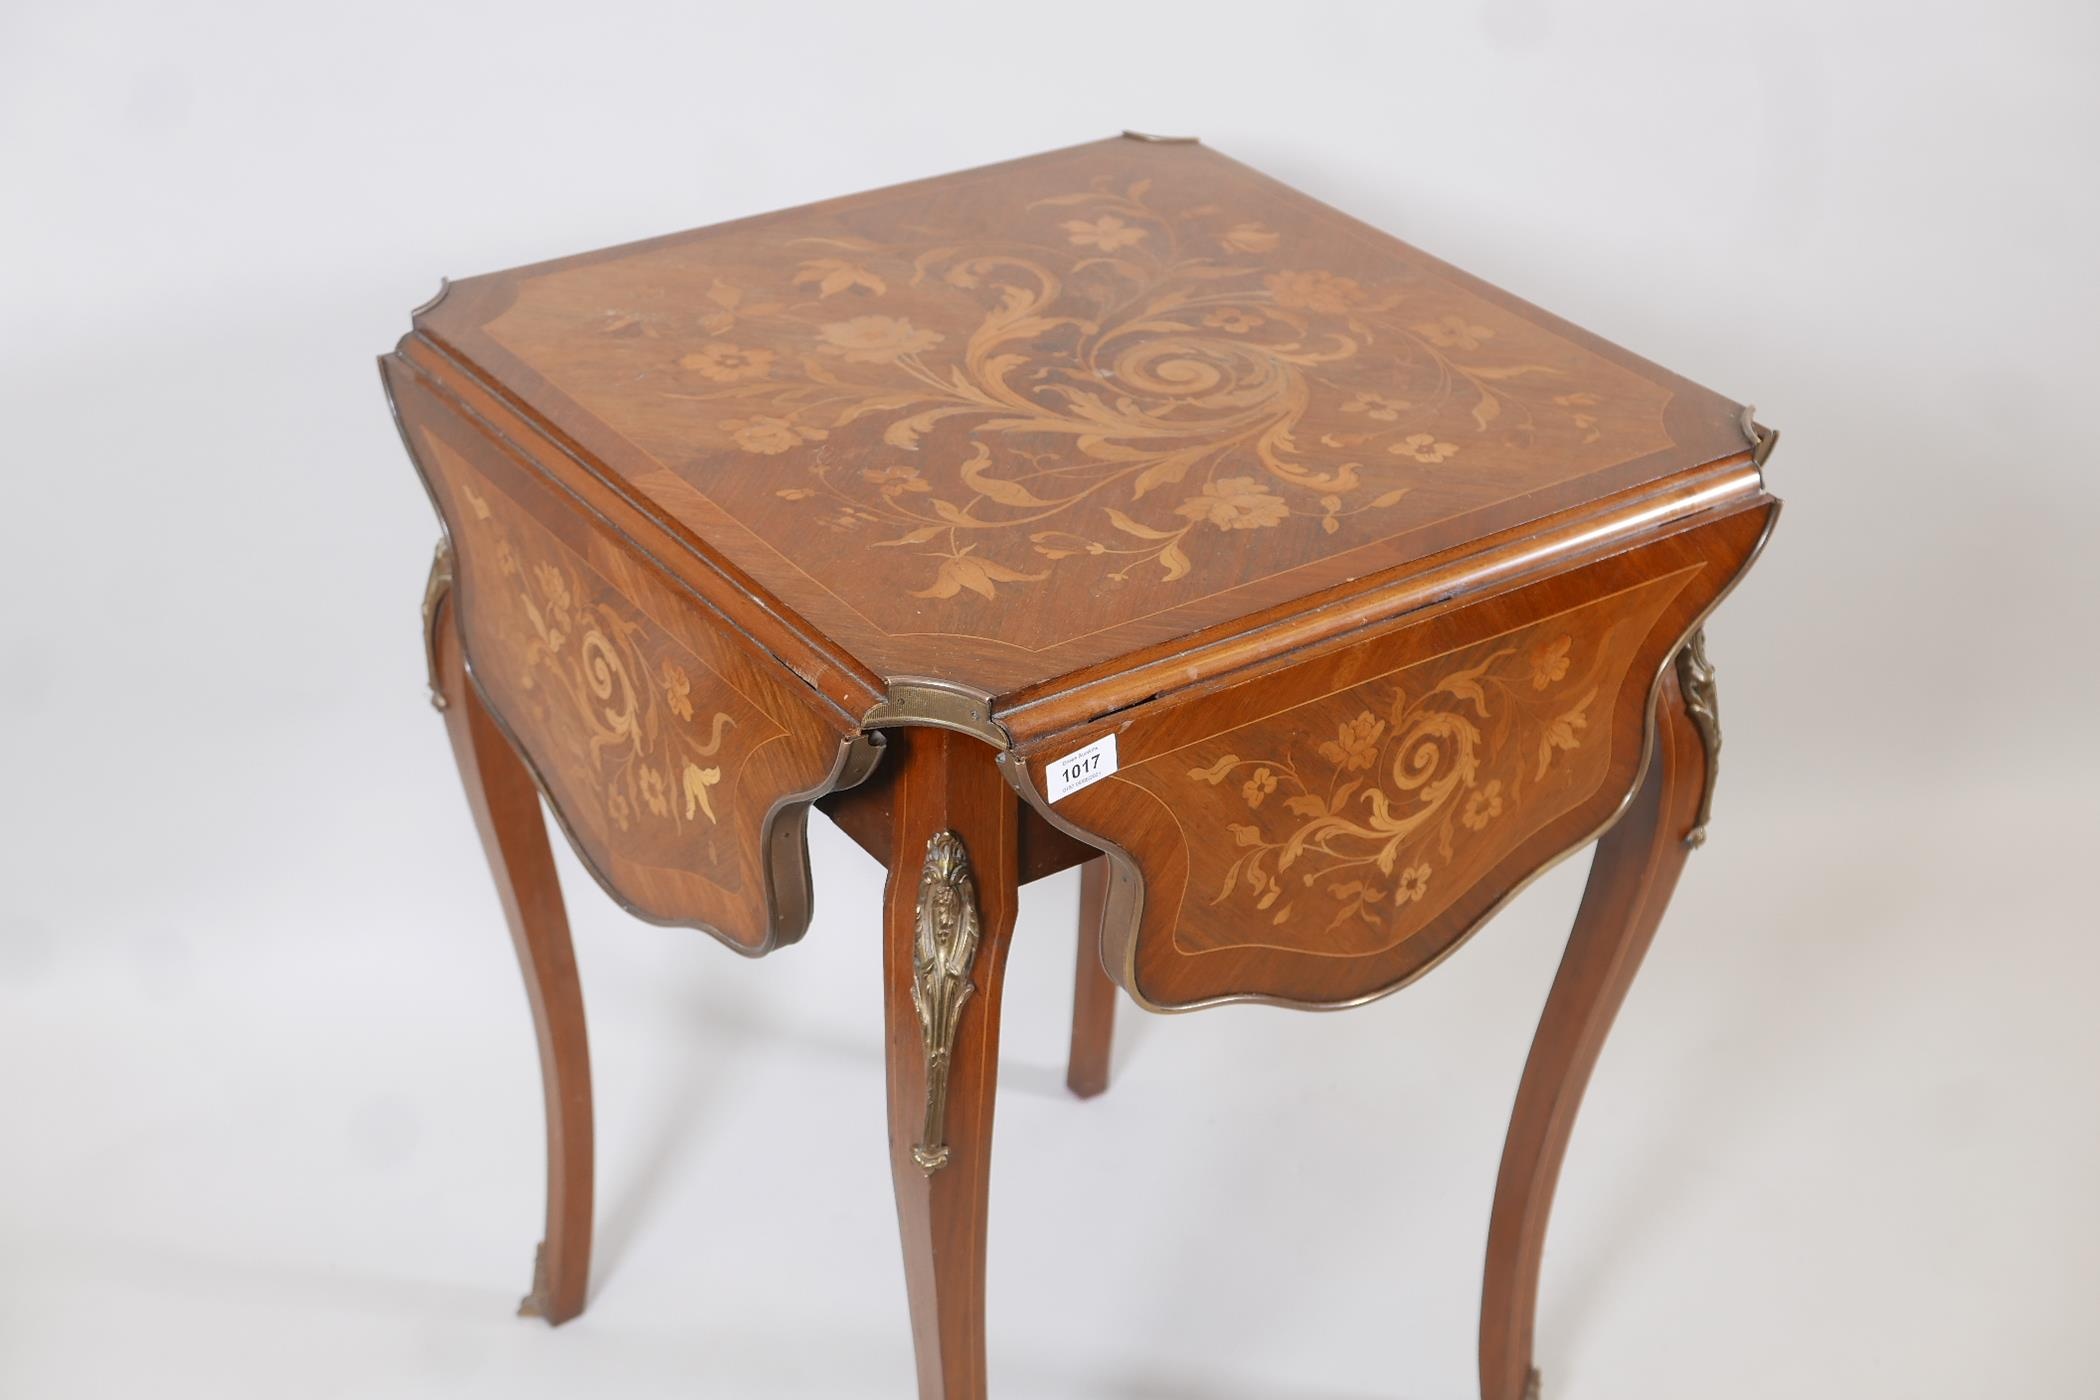 A French C19th marquetry inlaid rosewood centre table, with shaped drop leaves and gilt brass - Image 2 of 5